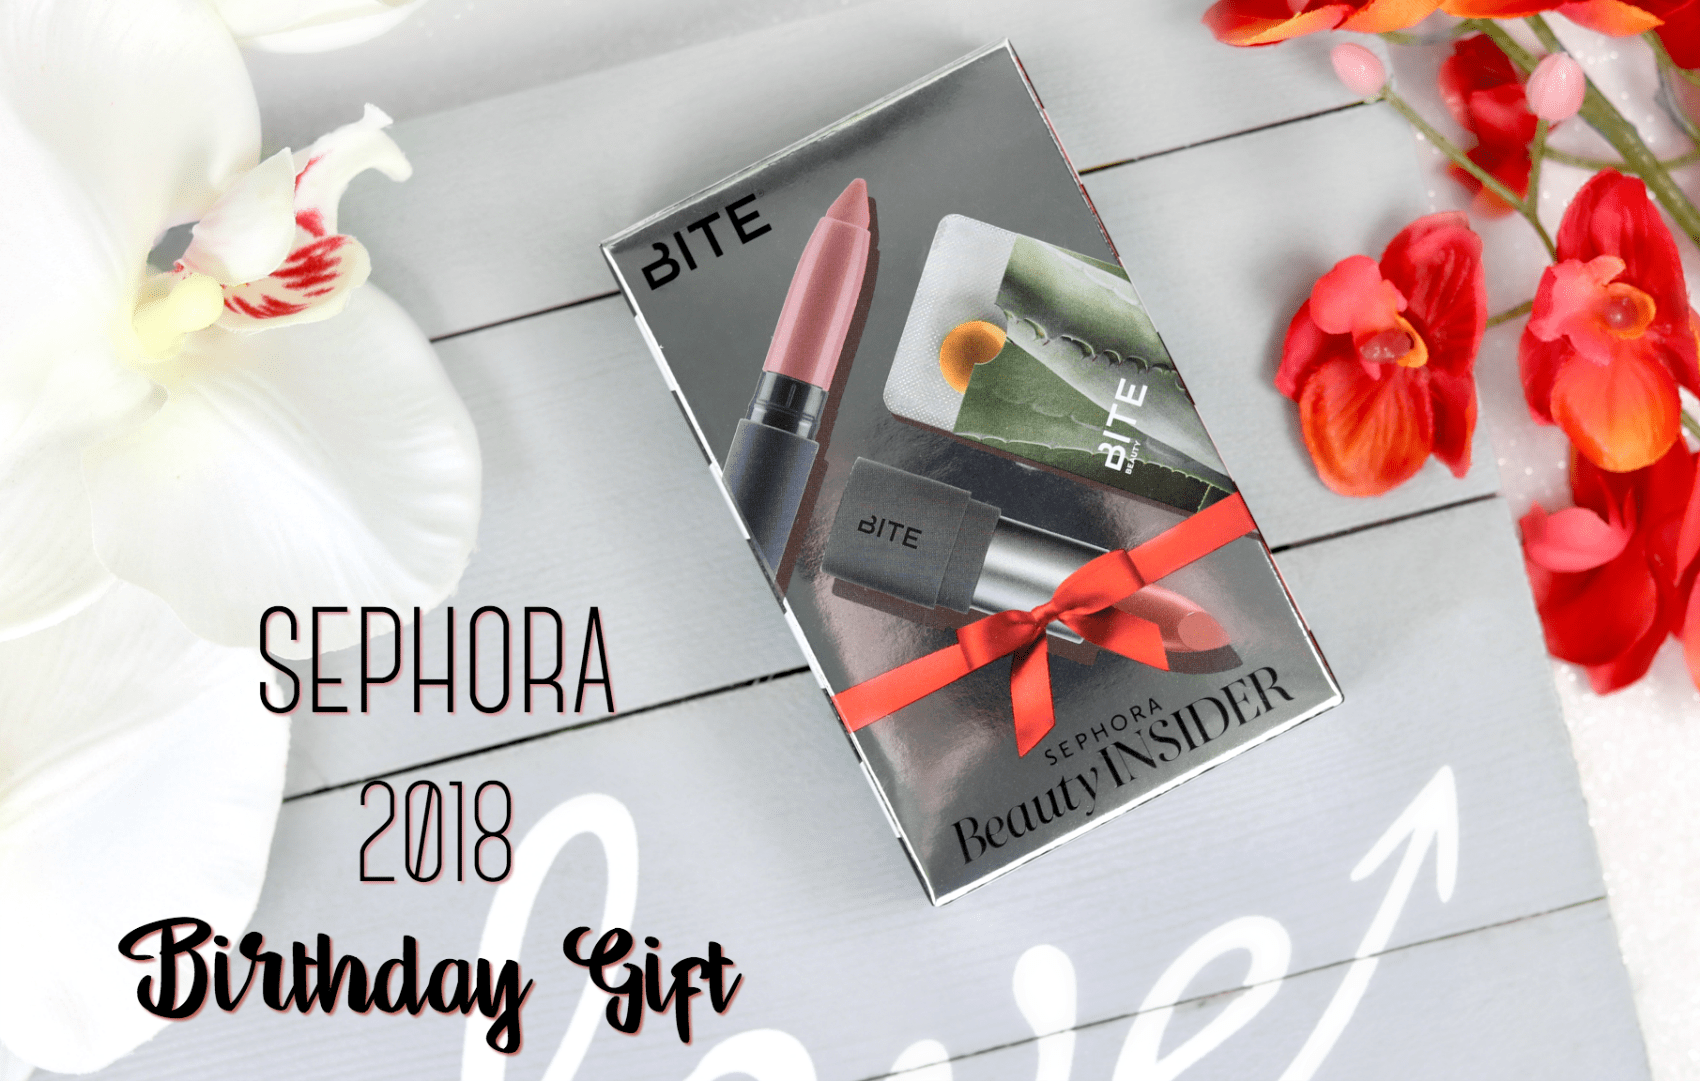 Sephora Birthday Gift 2018